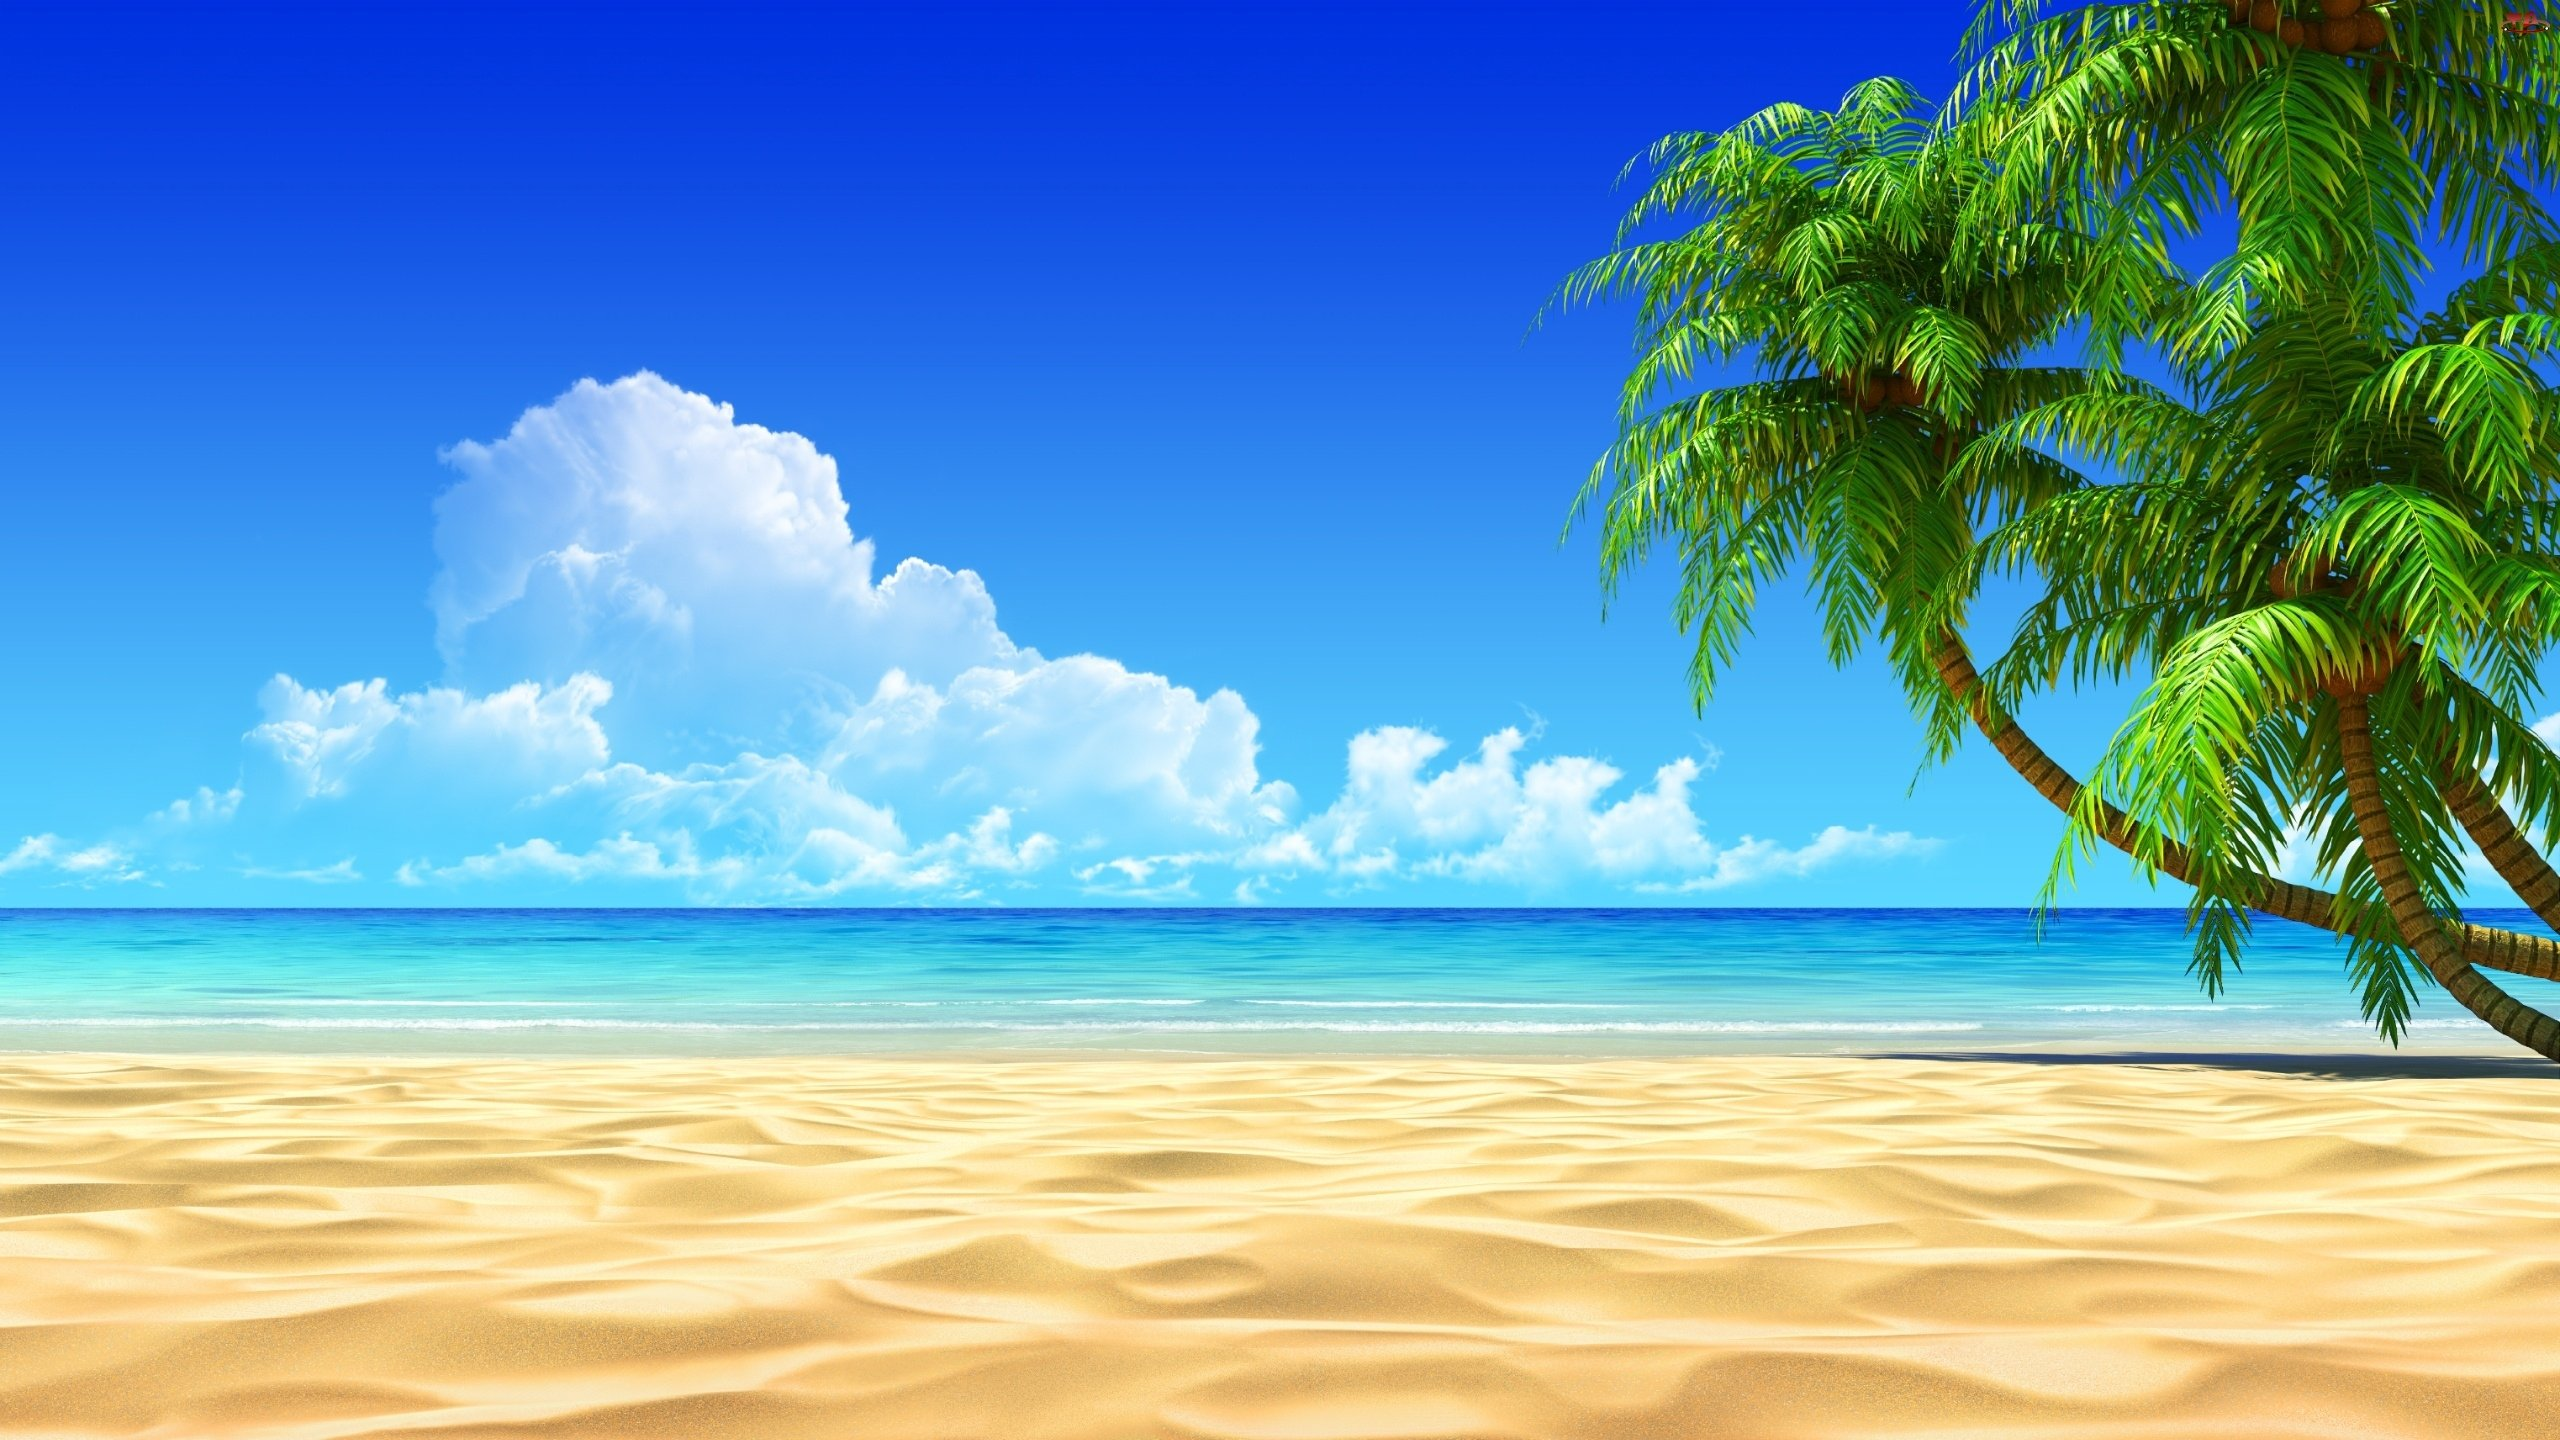 beach hd wallpapers beach hd wallpapers beach hd wallpapers beach 2560x1440